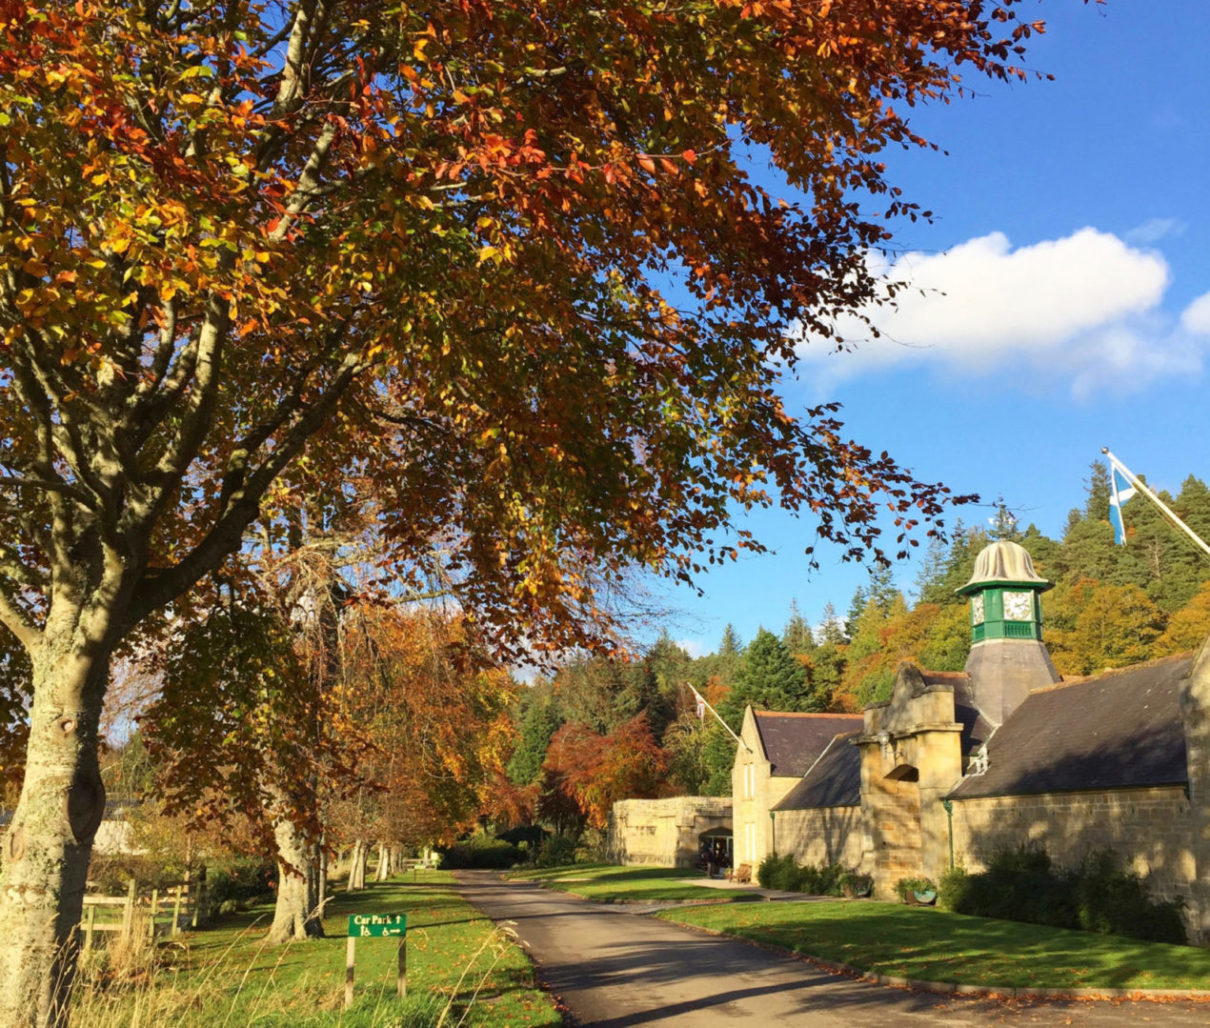 Logie Steading Visitor Centre near Forres in Scotland